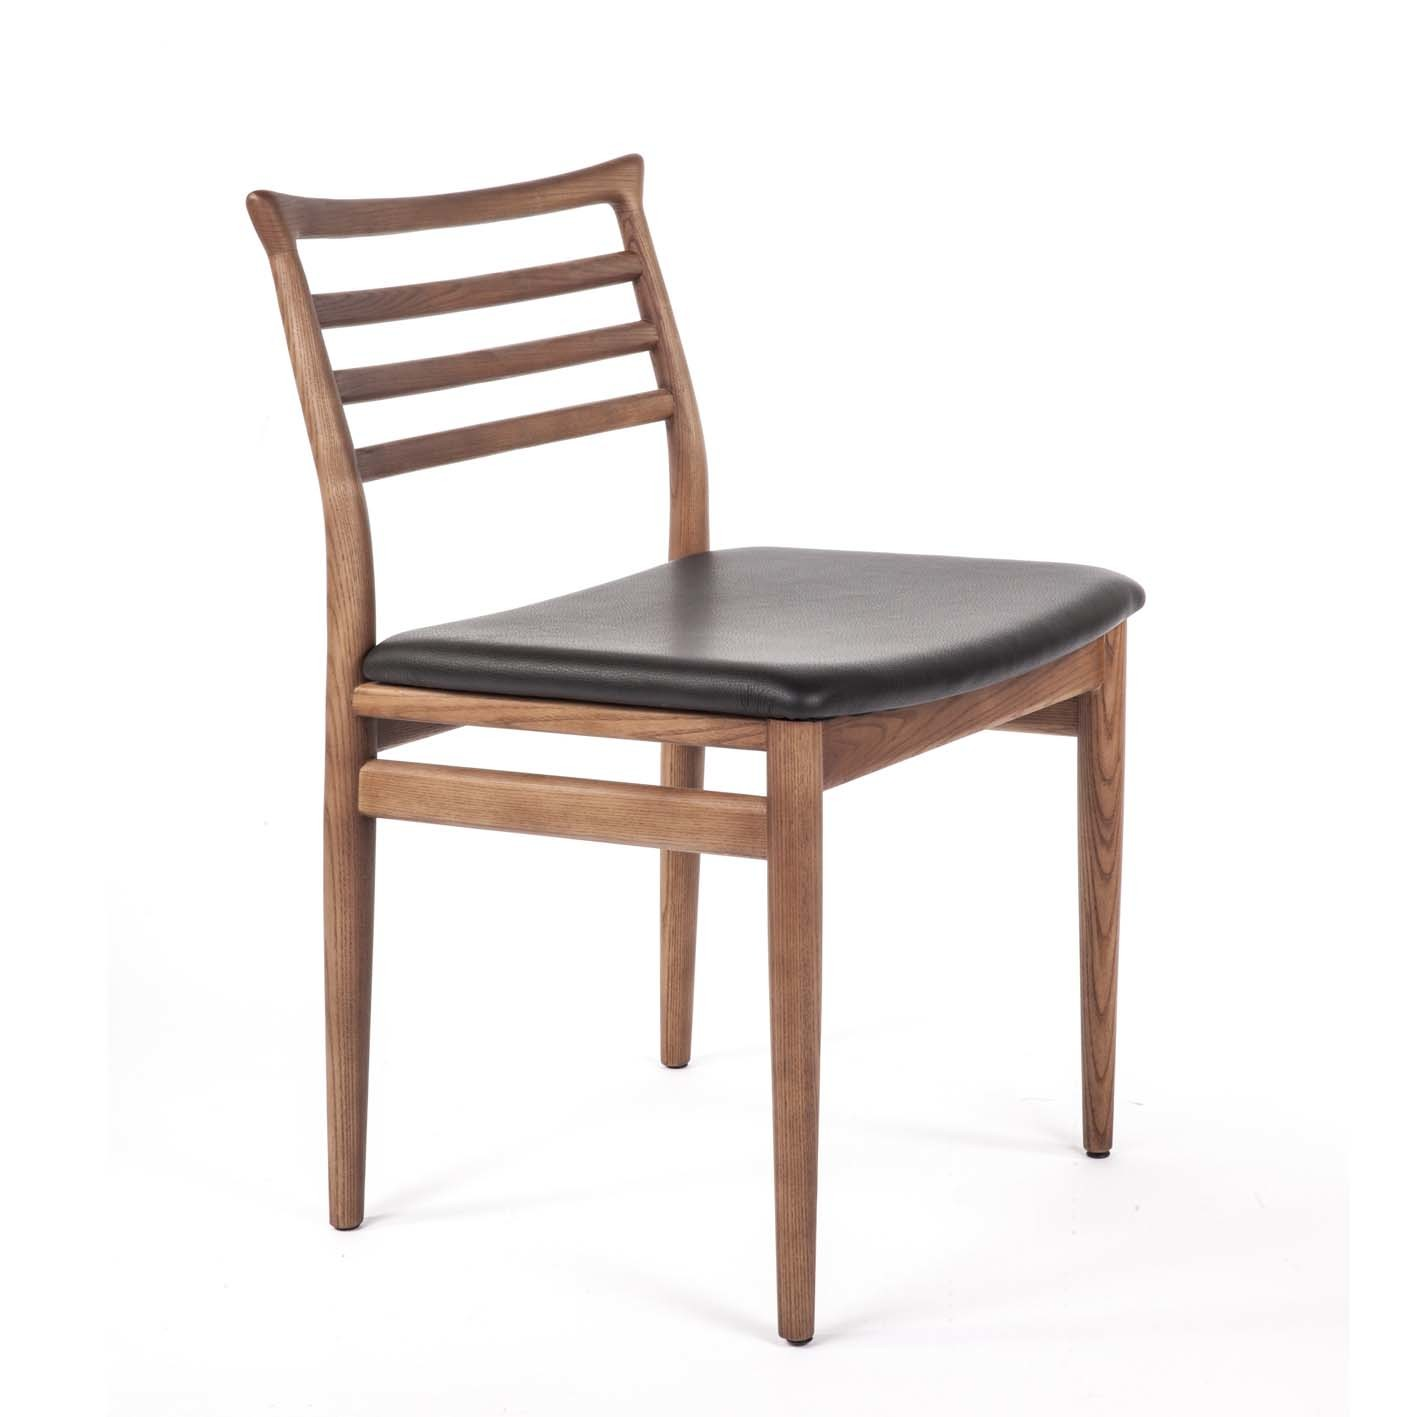 Midcentury Style Ladder Back Wooden Dining Chair EBay